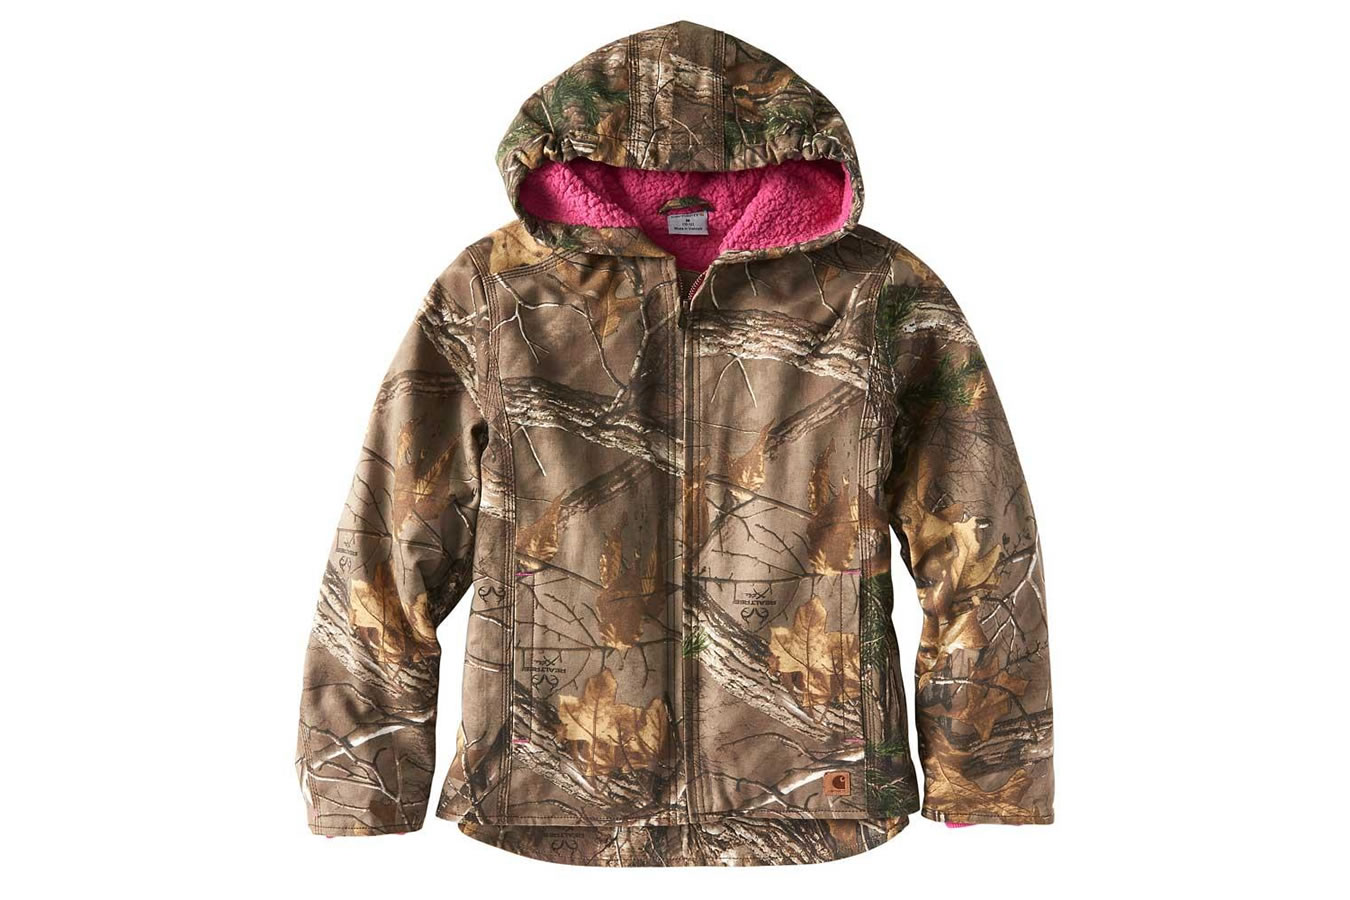 da7c9508af3 Carhartt Kids Camo Redwood Jacket | Vance Outdoors